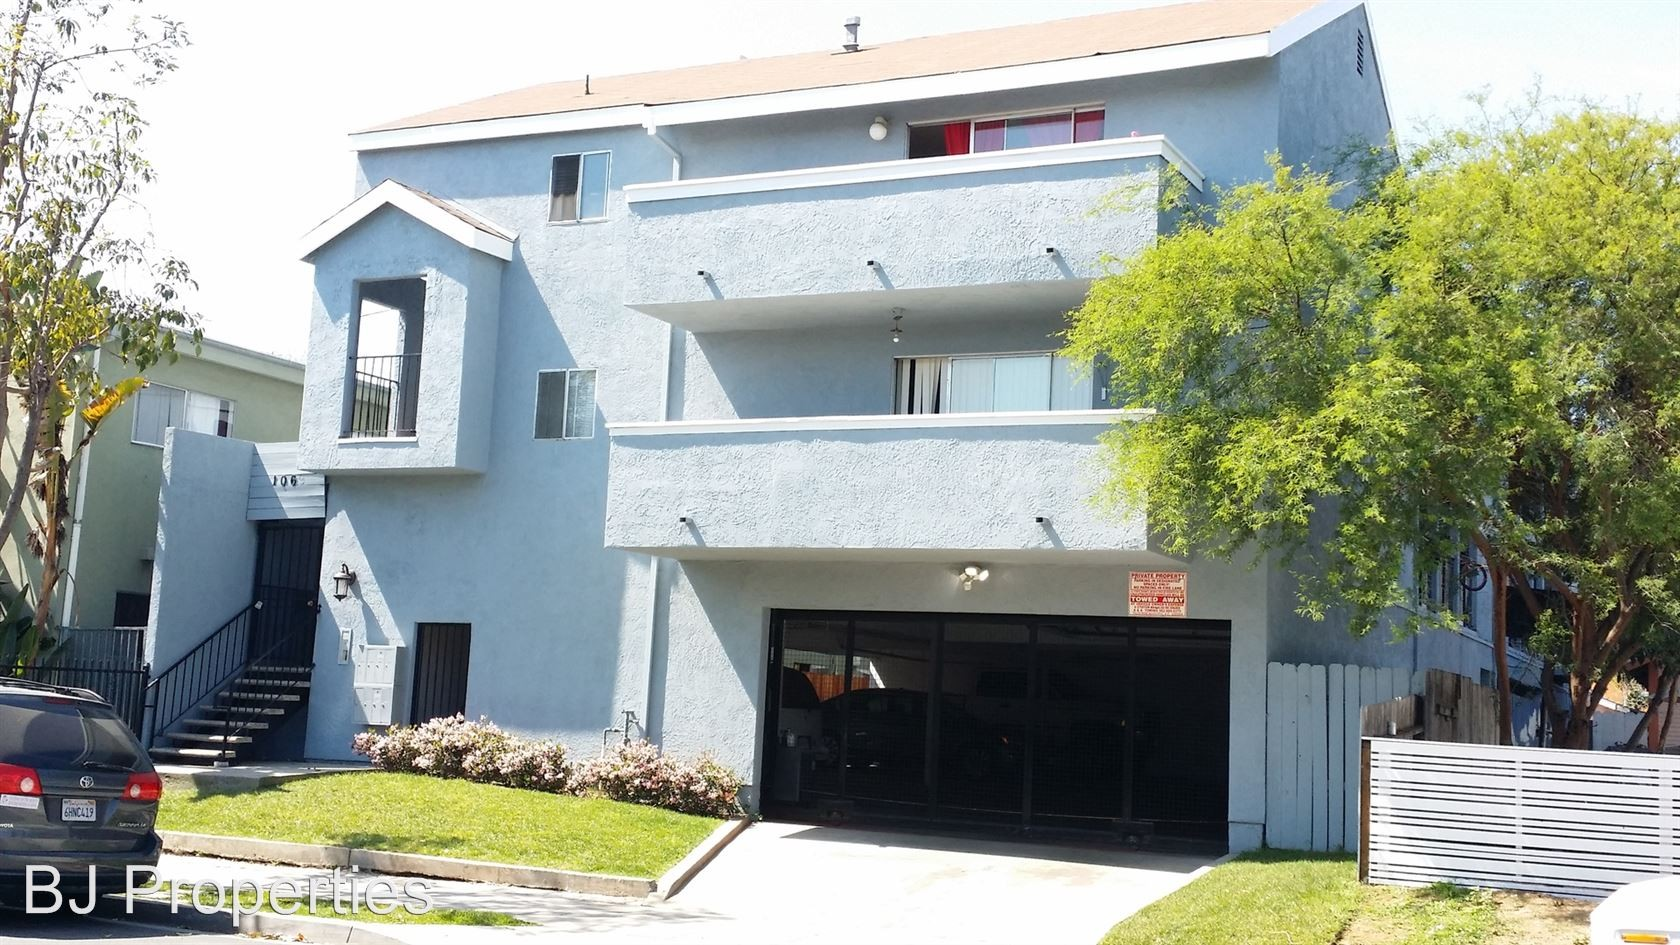 1069 Martin Luther King Jr Ave Long Beach Ca 90813 2 Bedroom Apartment For Rent For 1 400